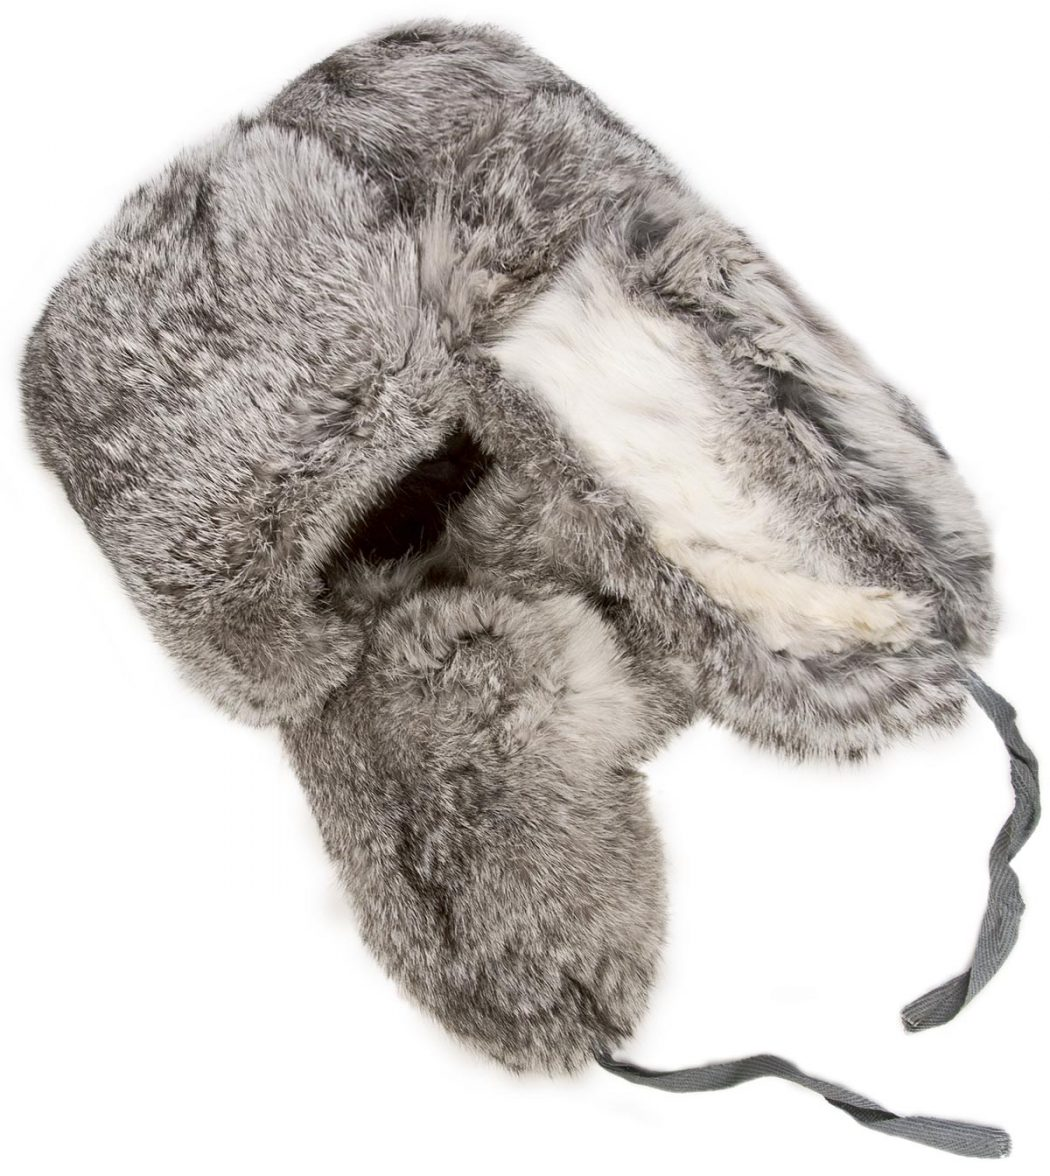 rabbit-fur-hat Best 10 Ideas for Choosing Winter Gifts